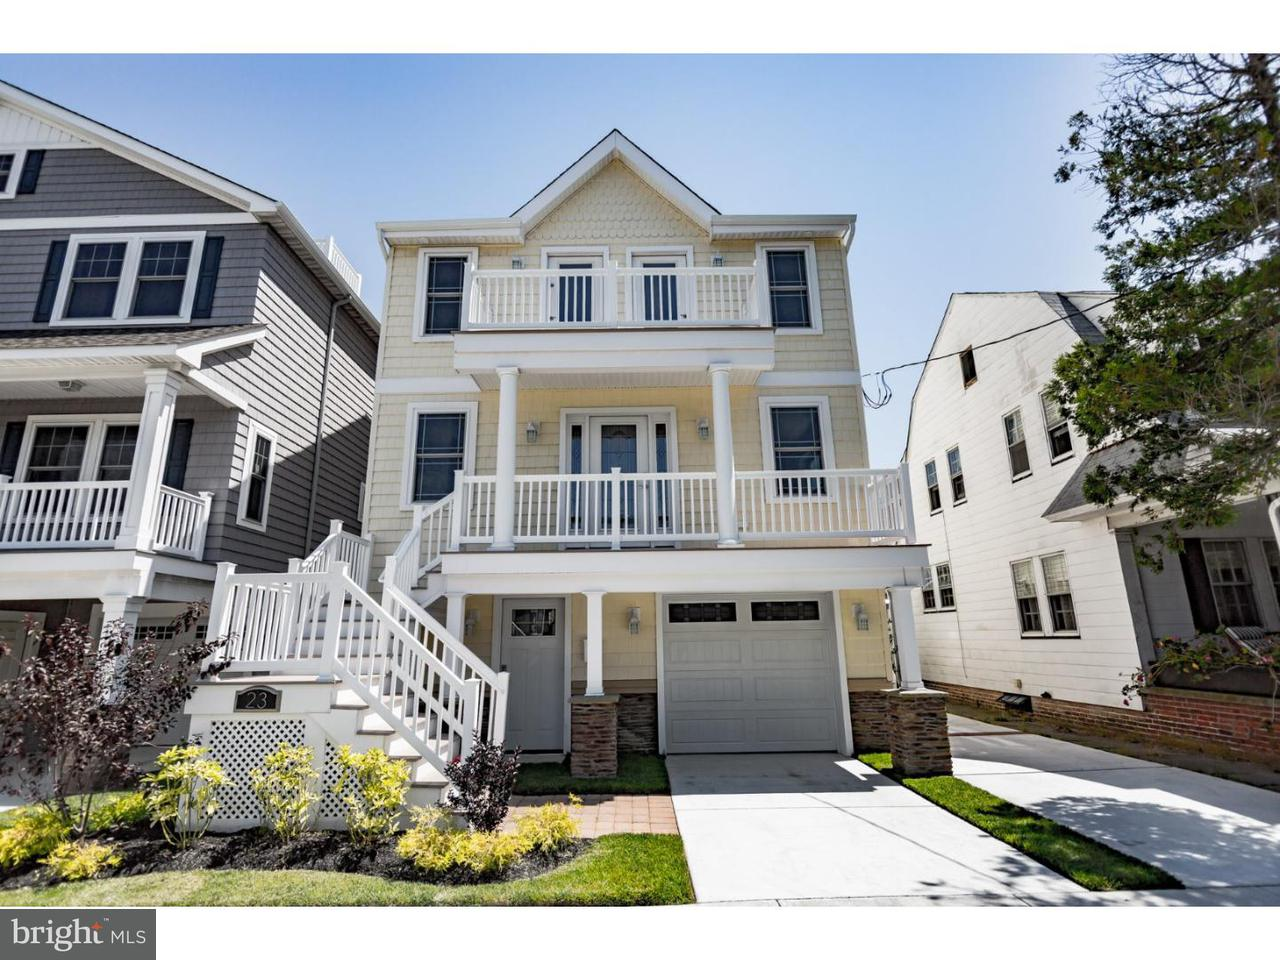 Single Family Home for Sale at 23 N CORNWALL Avenue Ventnor City, New Jersey 08406 United States